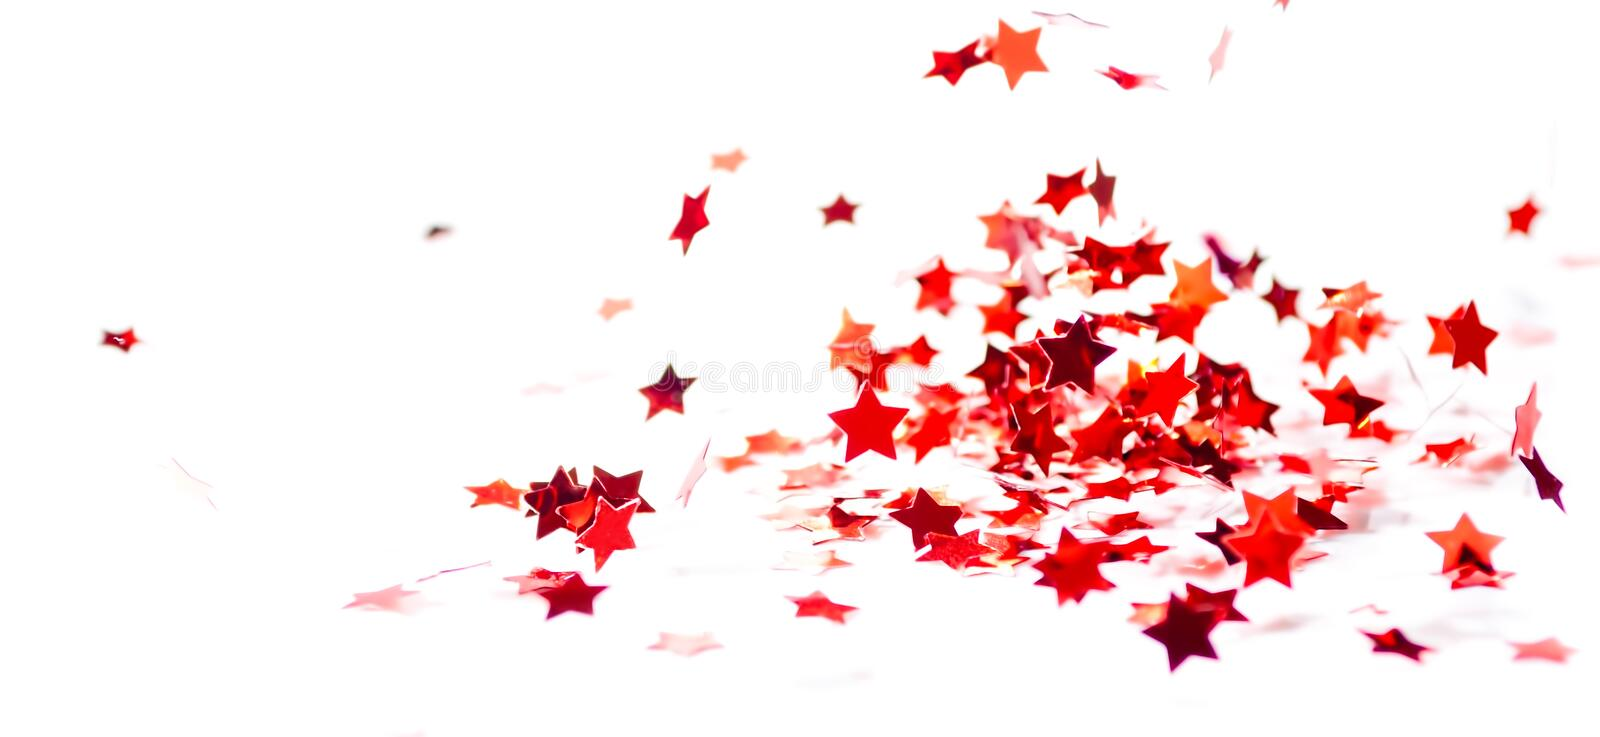 Scattered small red glossy confetti stars fly